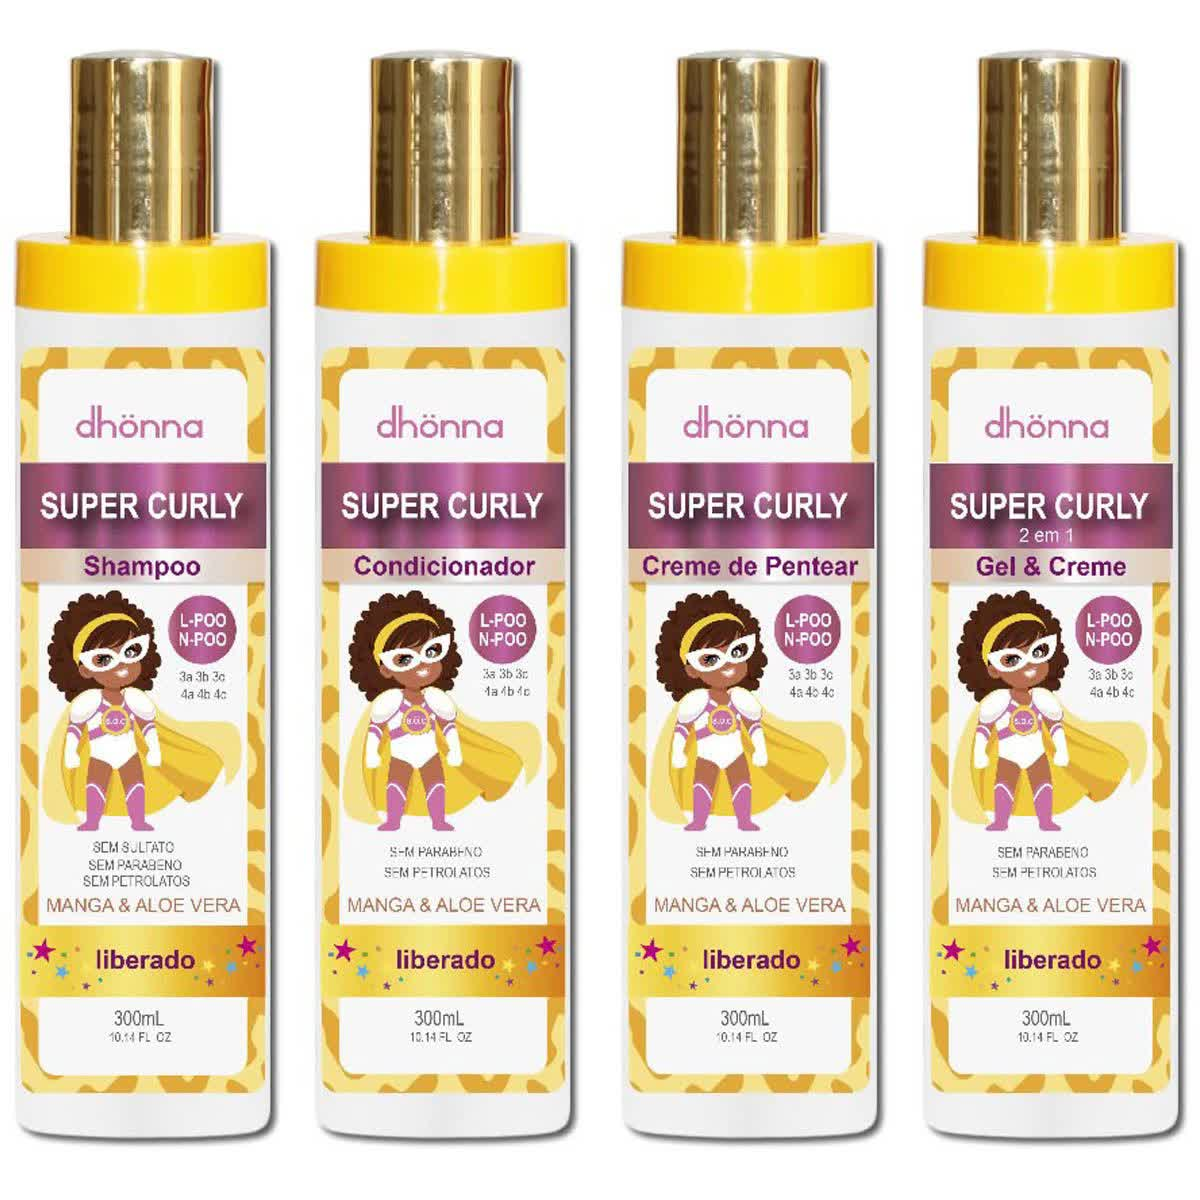 Kit Super Curly - Dhonna